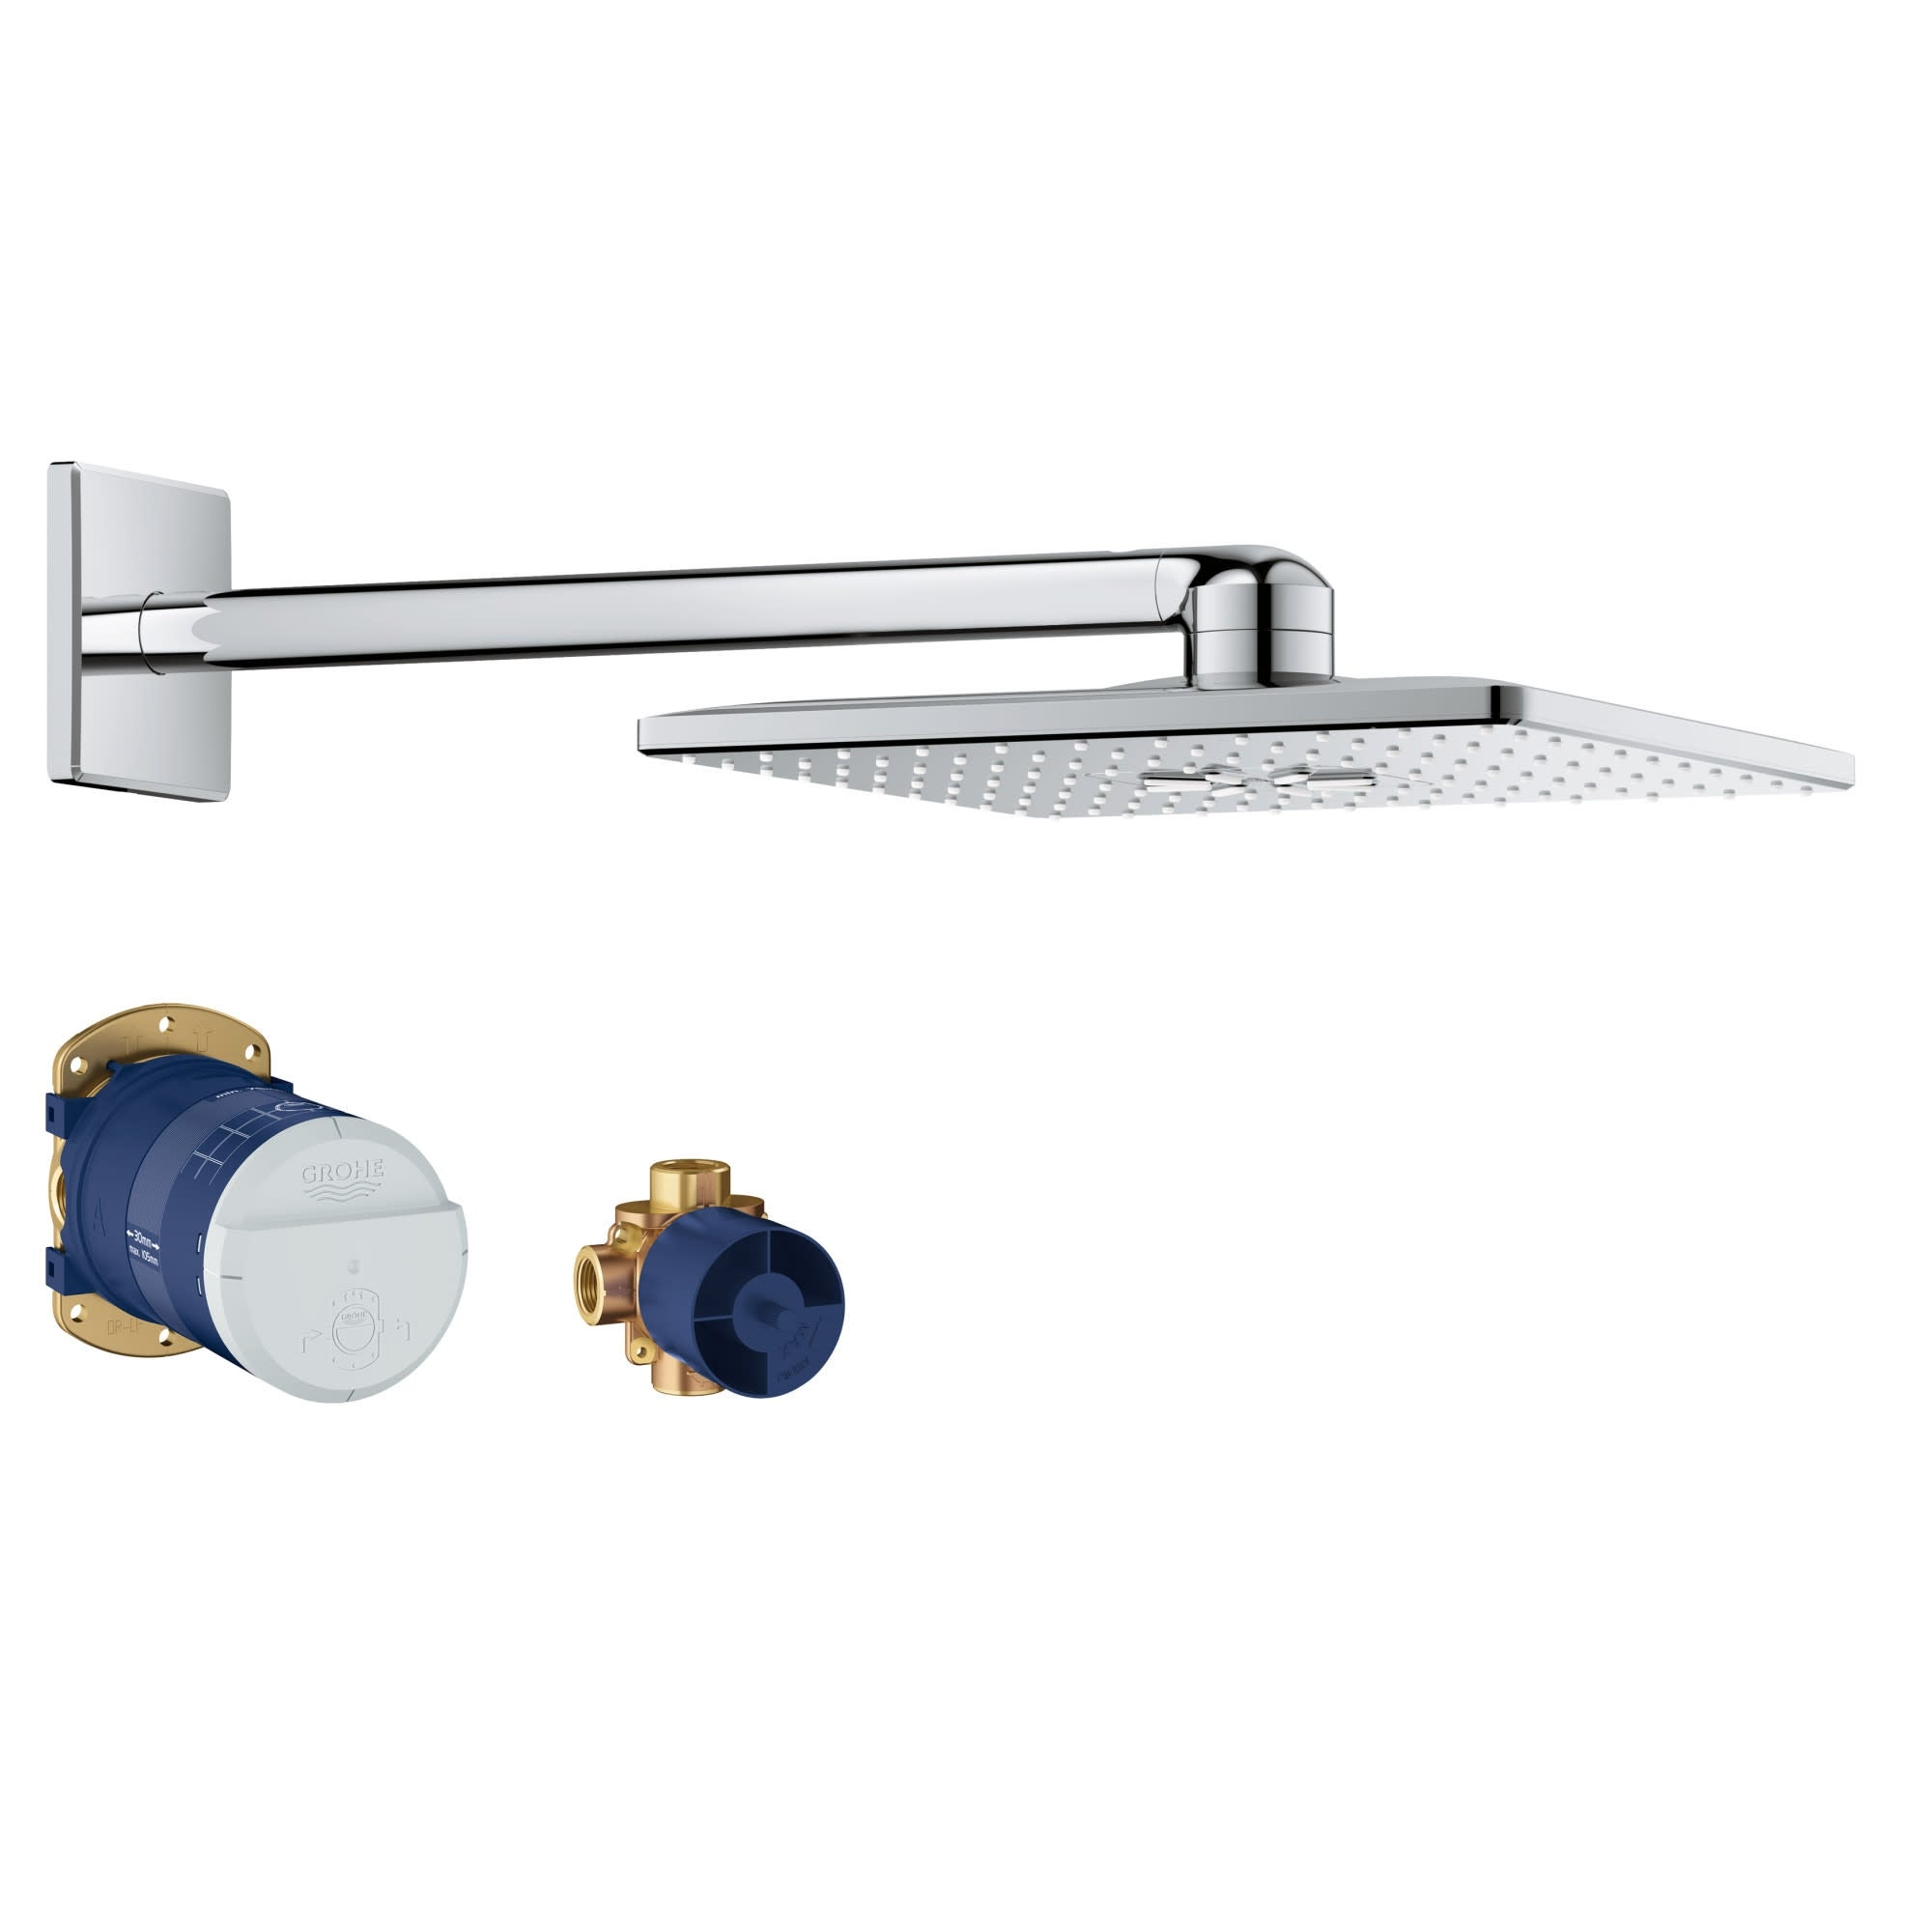 Grohe 26 504 Rainshower 1 75 Gpm Multi Function Square Shower Head With Shower Arm Flange And Rough In Set Starlight Chrome